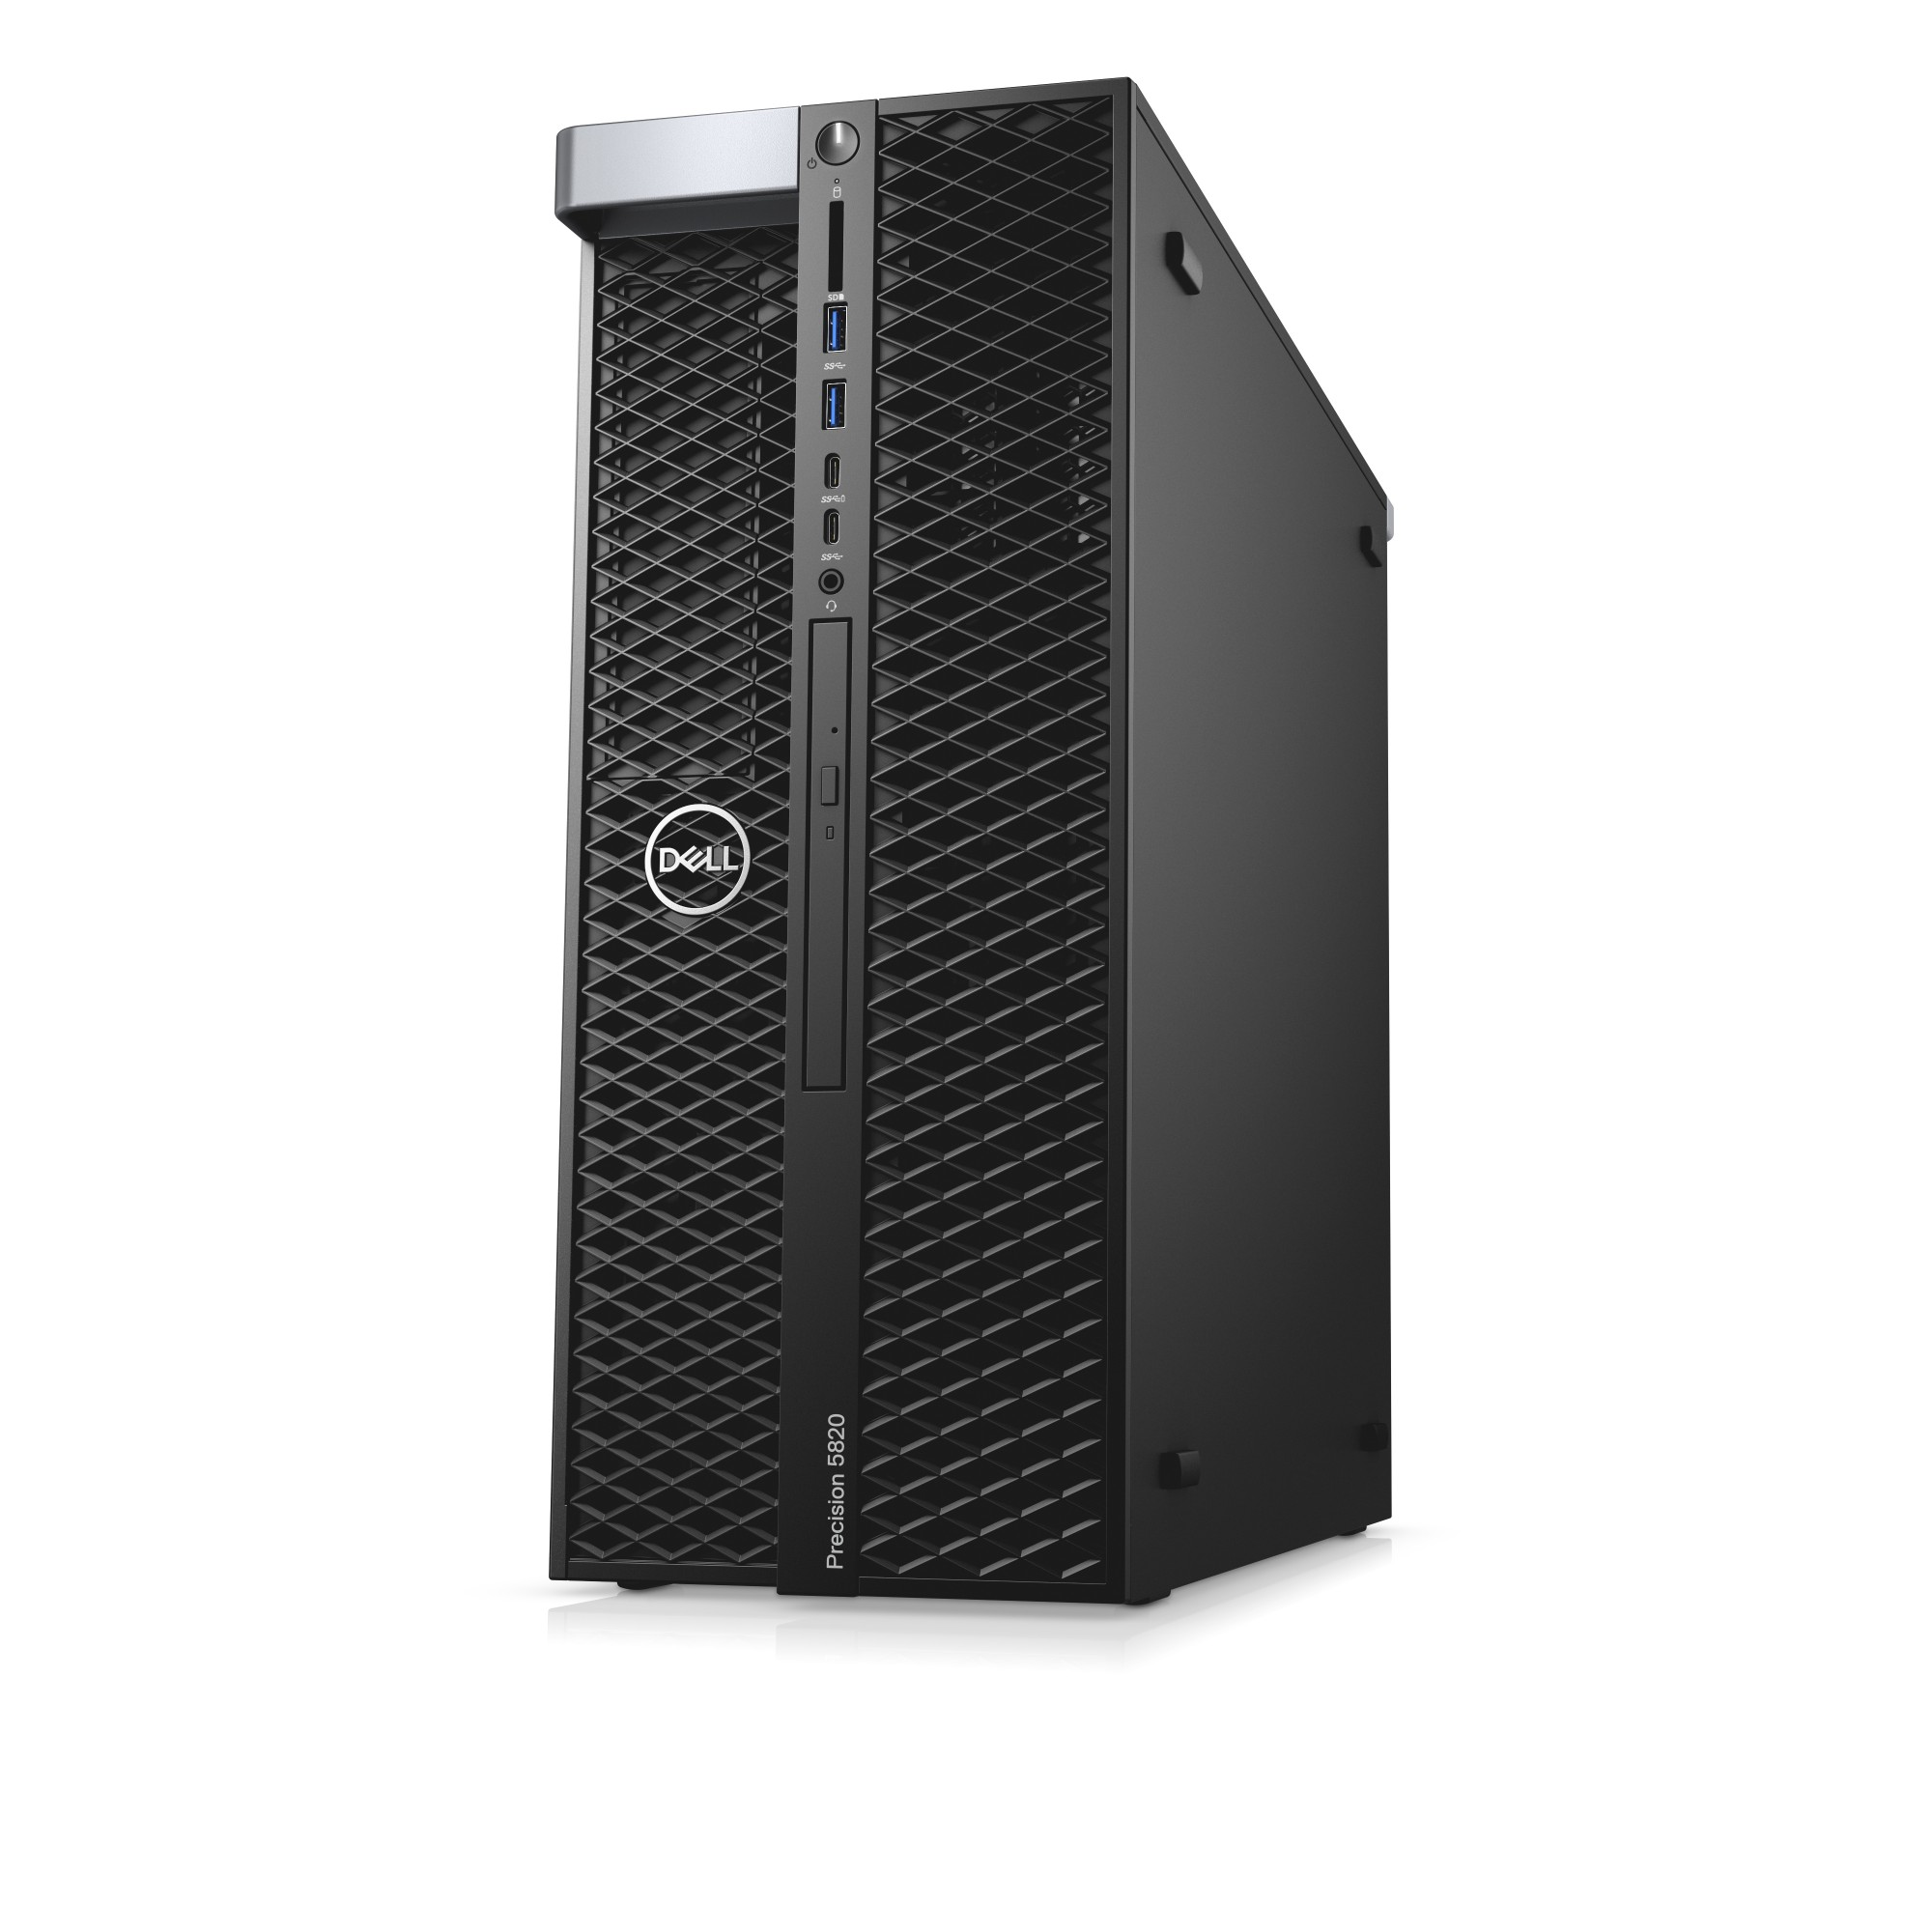 DELL Precision 5820 Intel® Xeon® W-2123 16 GB DDR4-SDRAM 512 GB SSD Black  Tower Workstation